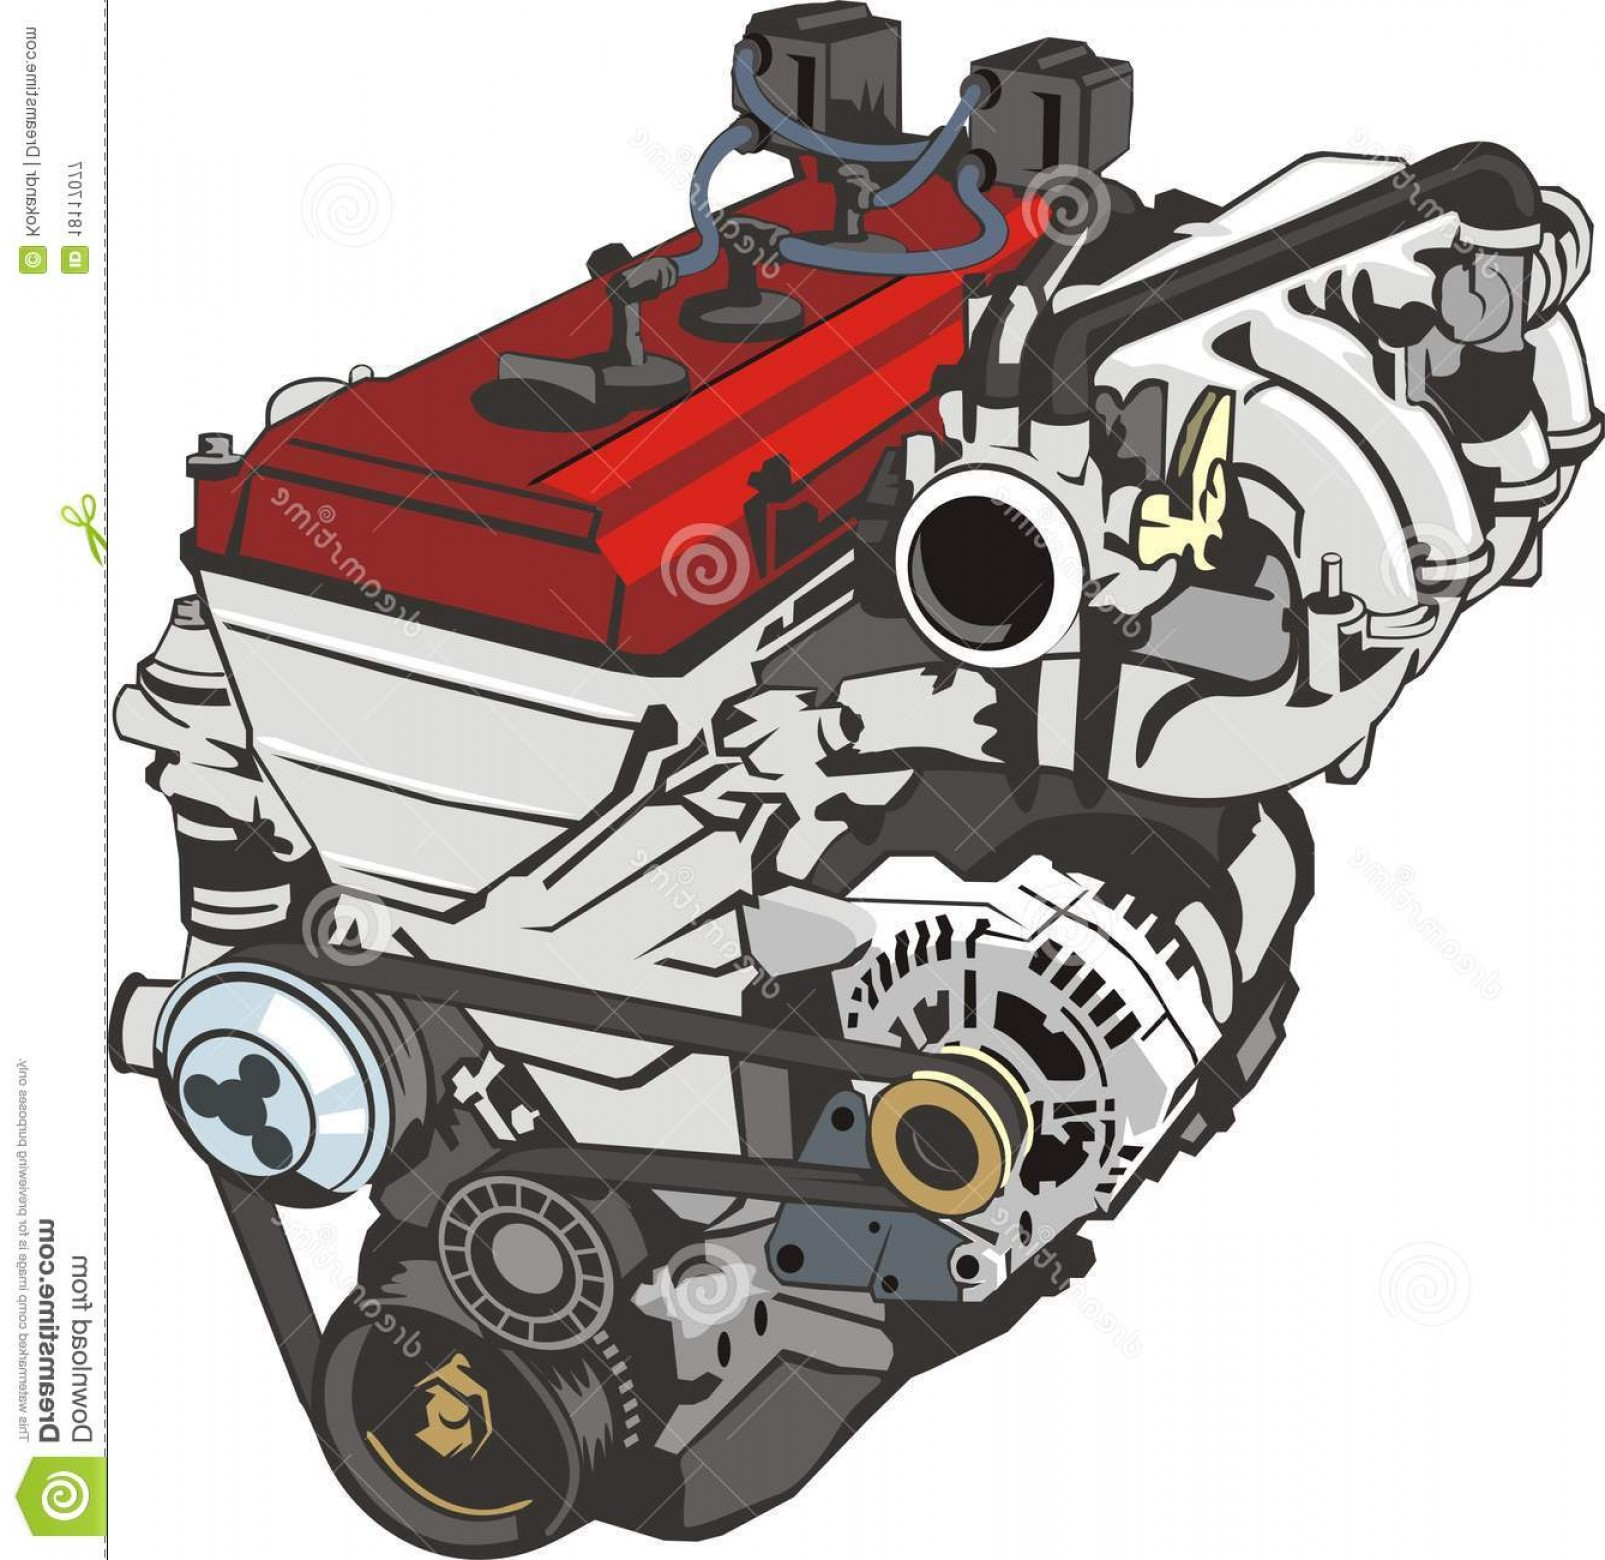 Diesel Engine Block Vector: Royalty Free Stock Photography Car Engine Image